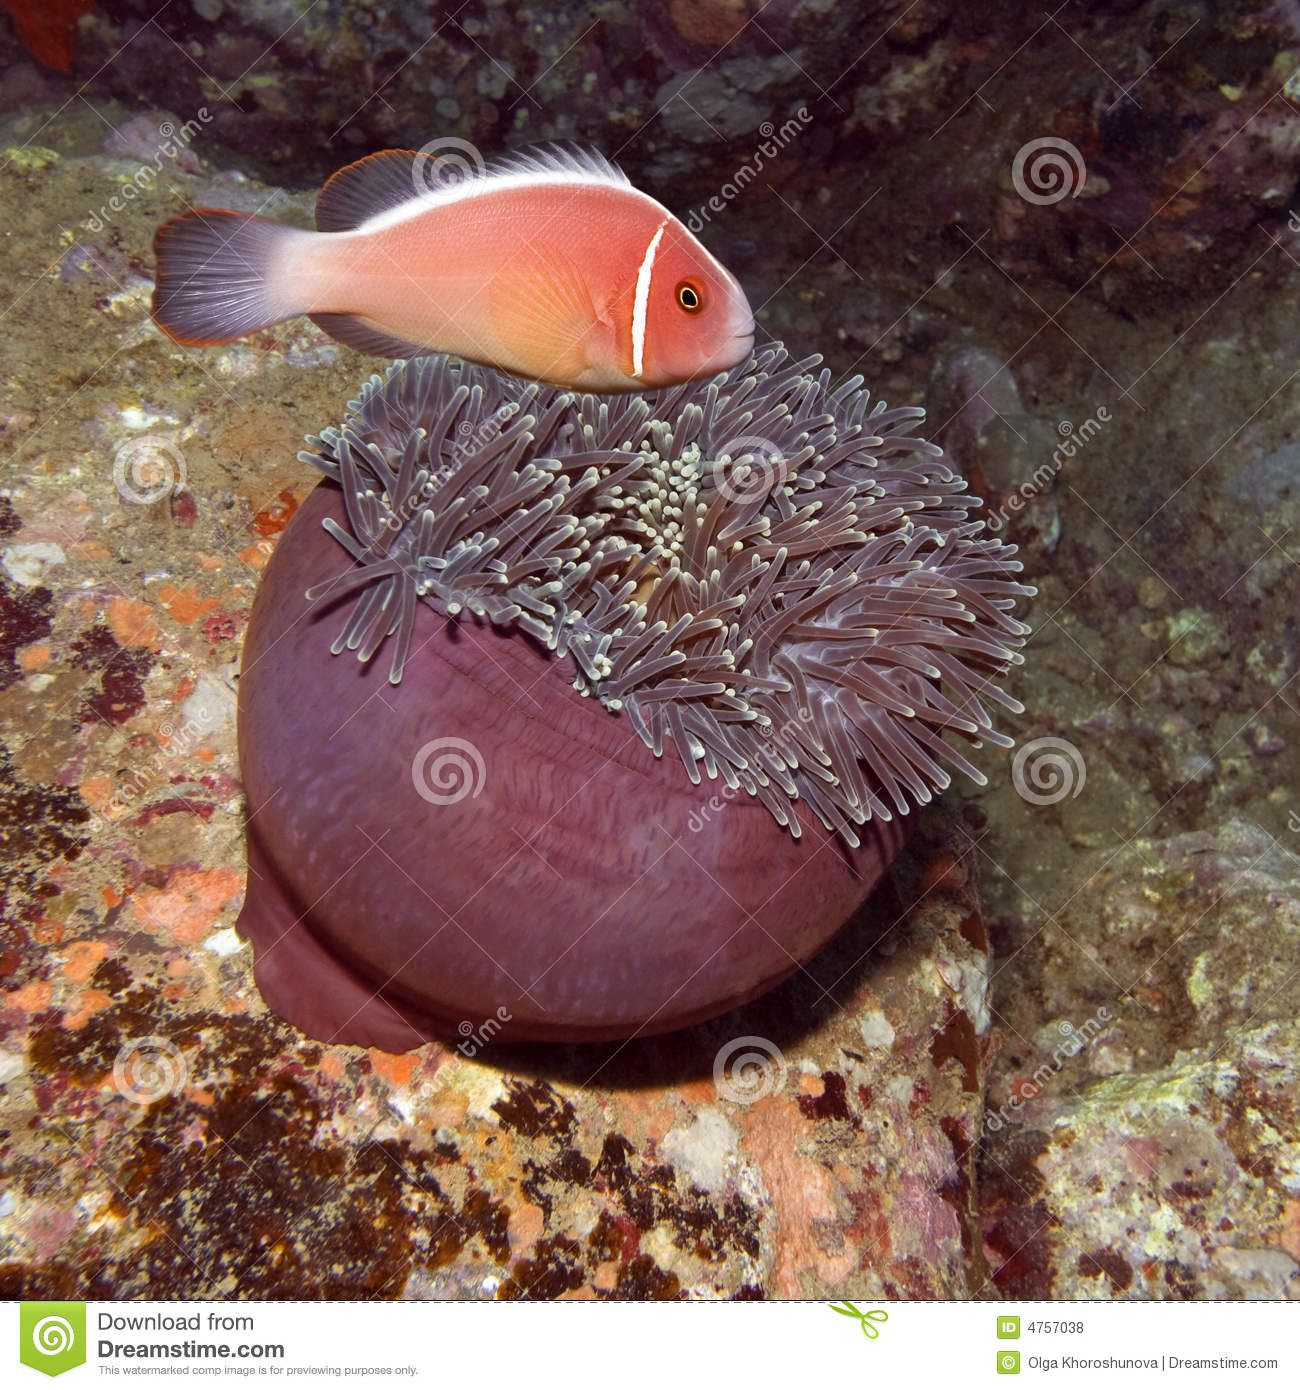 Clownfish and eating anemone royalty free stock photos for What do clown fish eat